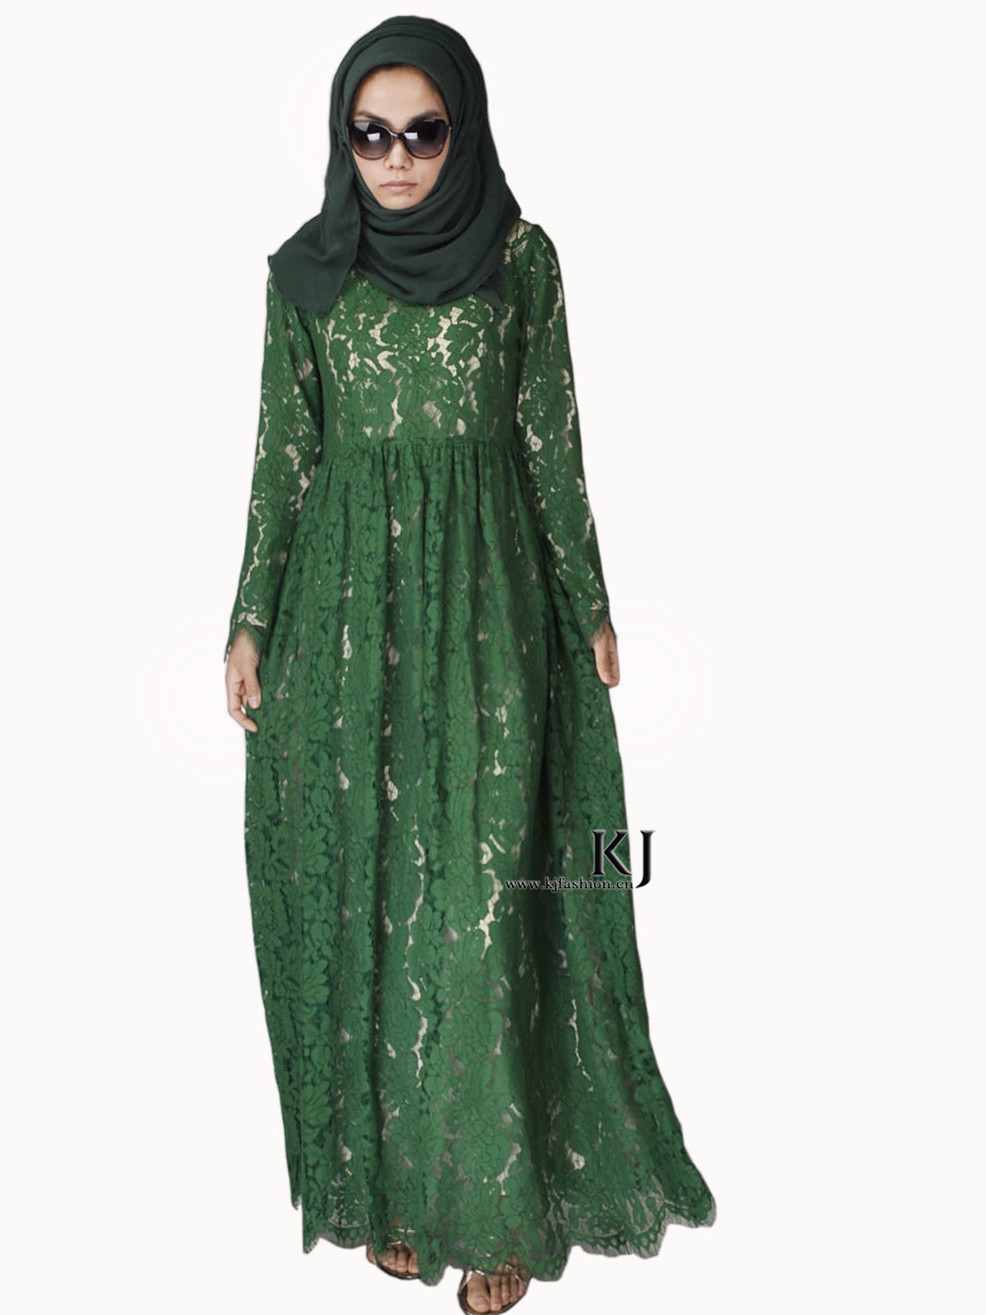 Jilbab Designs 2015 2015 New Design Muslim Women